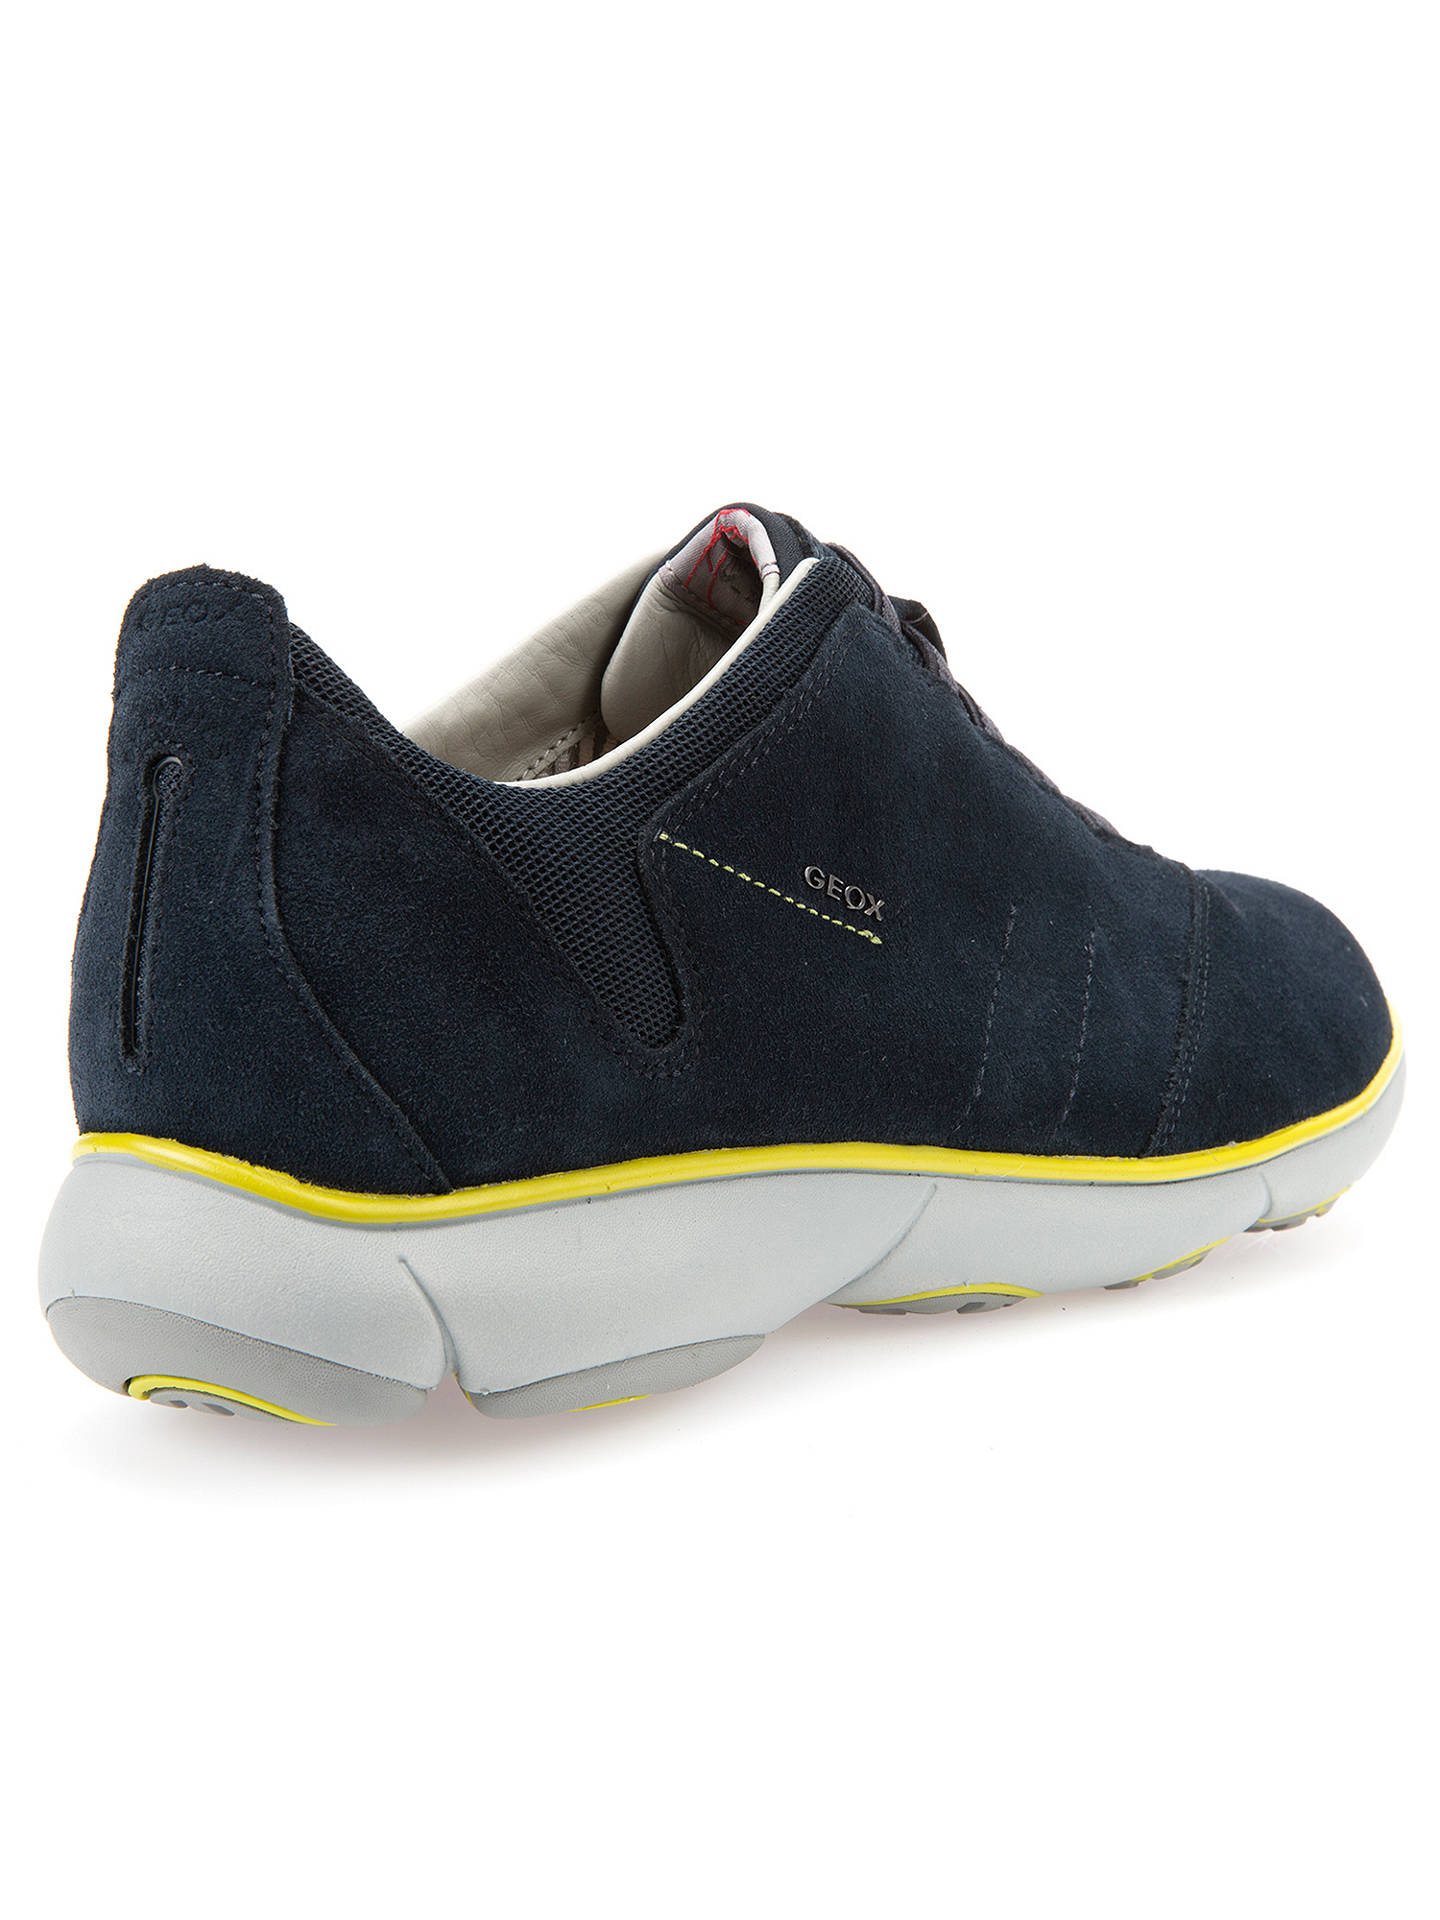 207be1f569 ... Buy Geox Nebula 3D Breathing Trainers, Navy, 7 Online at johnlewis.com  ...